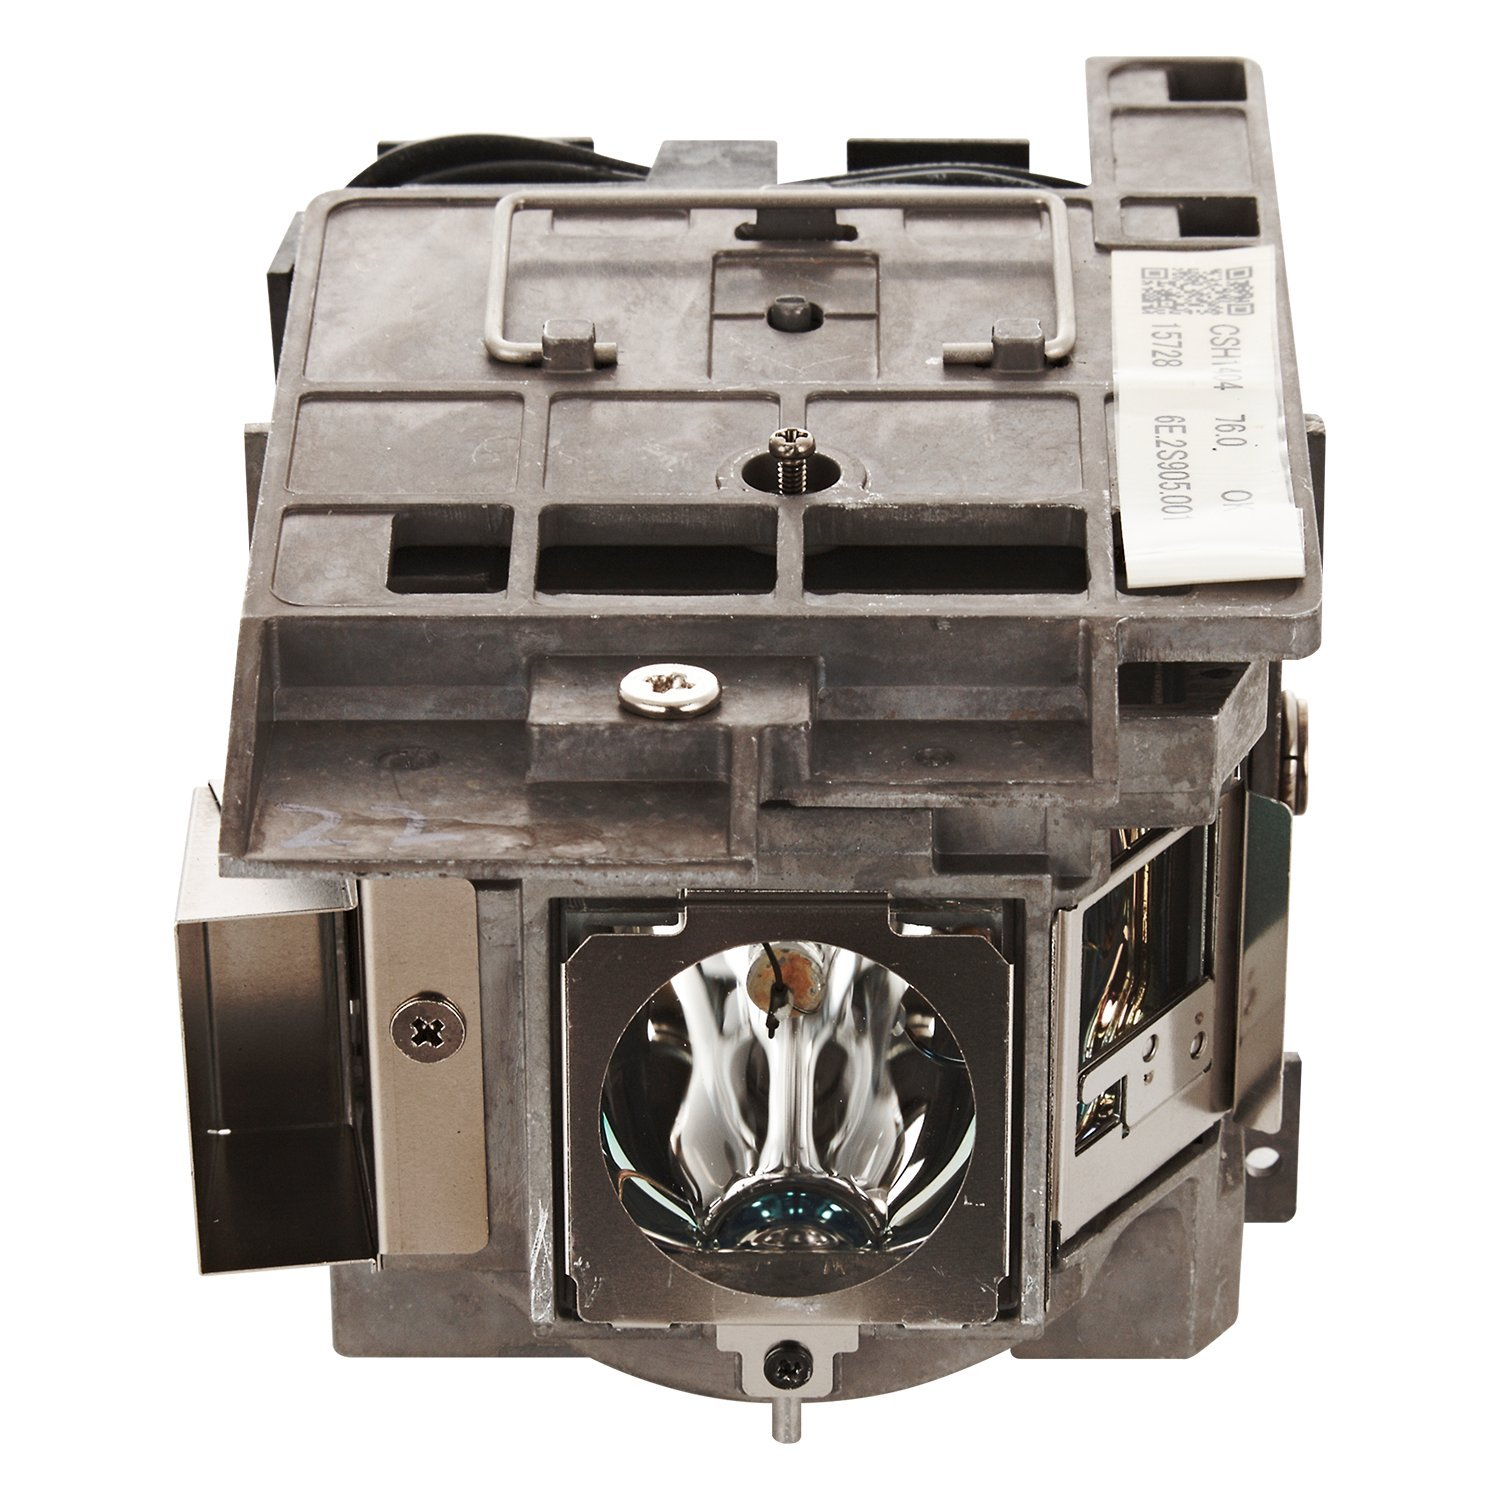 ViewSonic RLC-103 Projector Replacement Lamp for ViewSonic PRO8510L, PRO8530HDL Projectors by ViewSonic